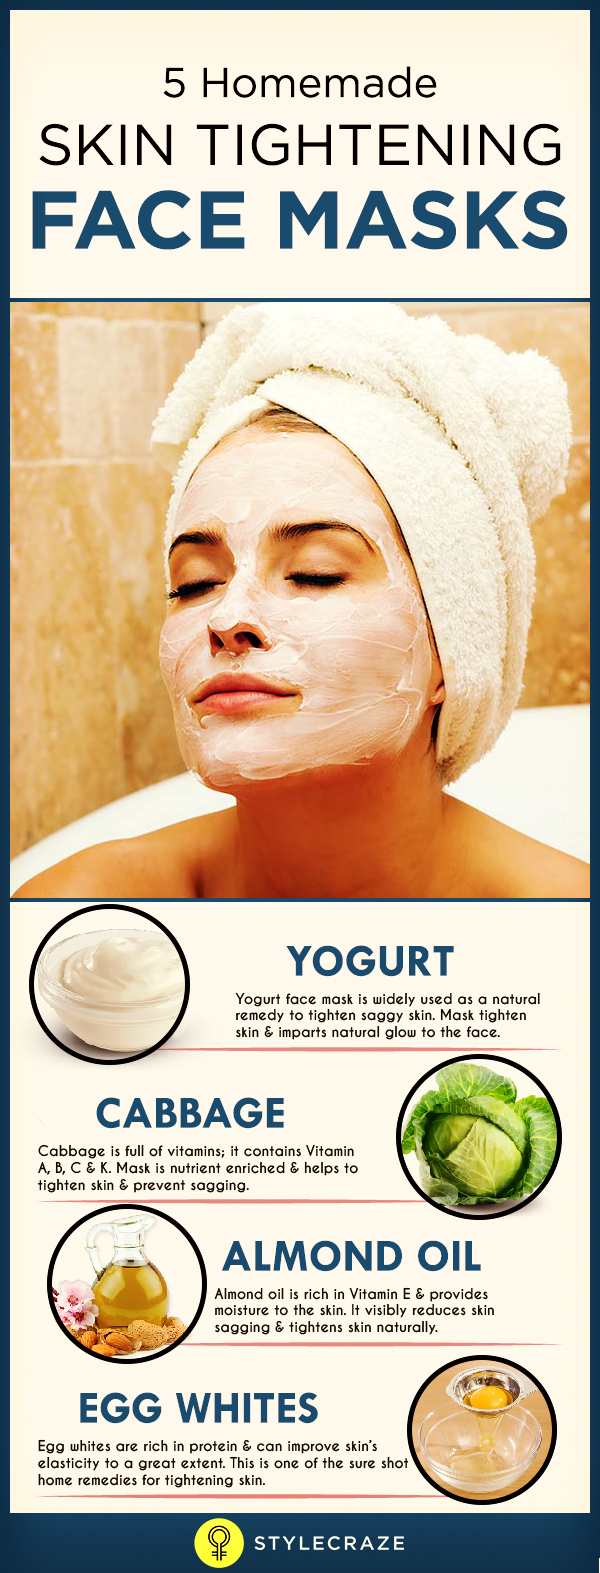 Making your own natural facial firmer